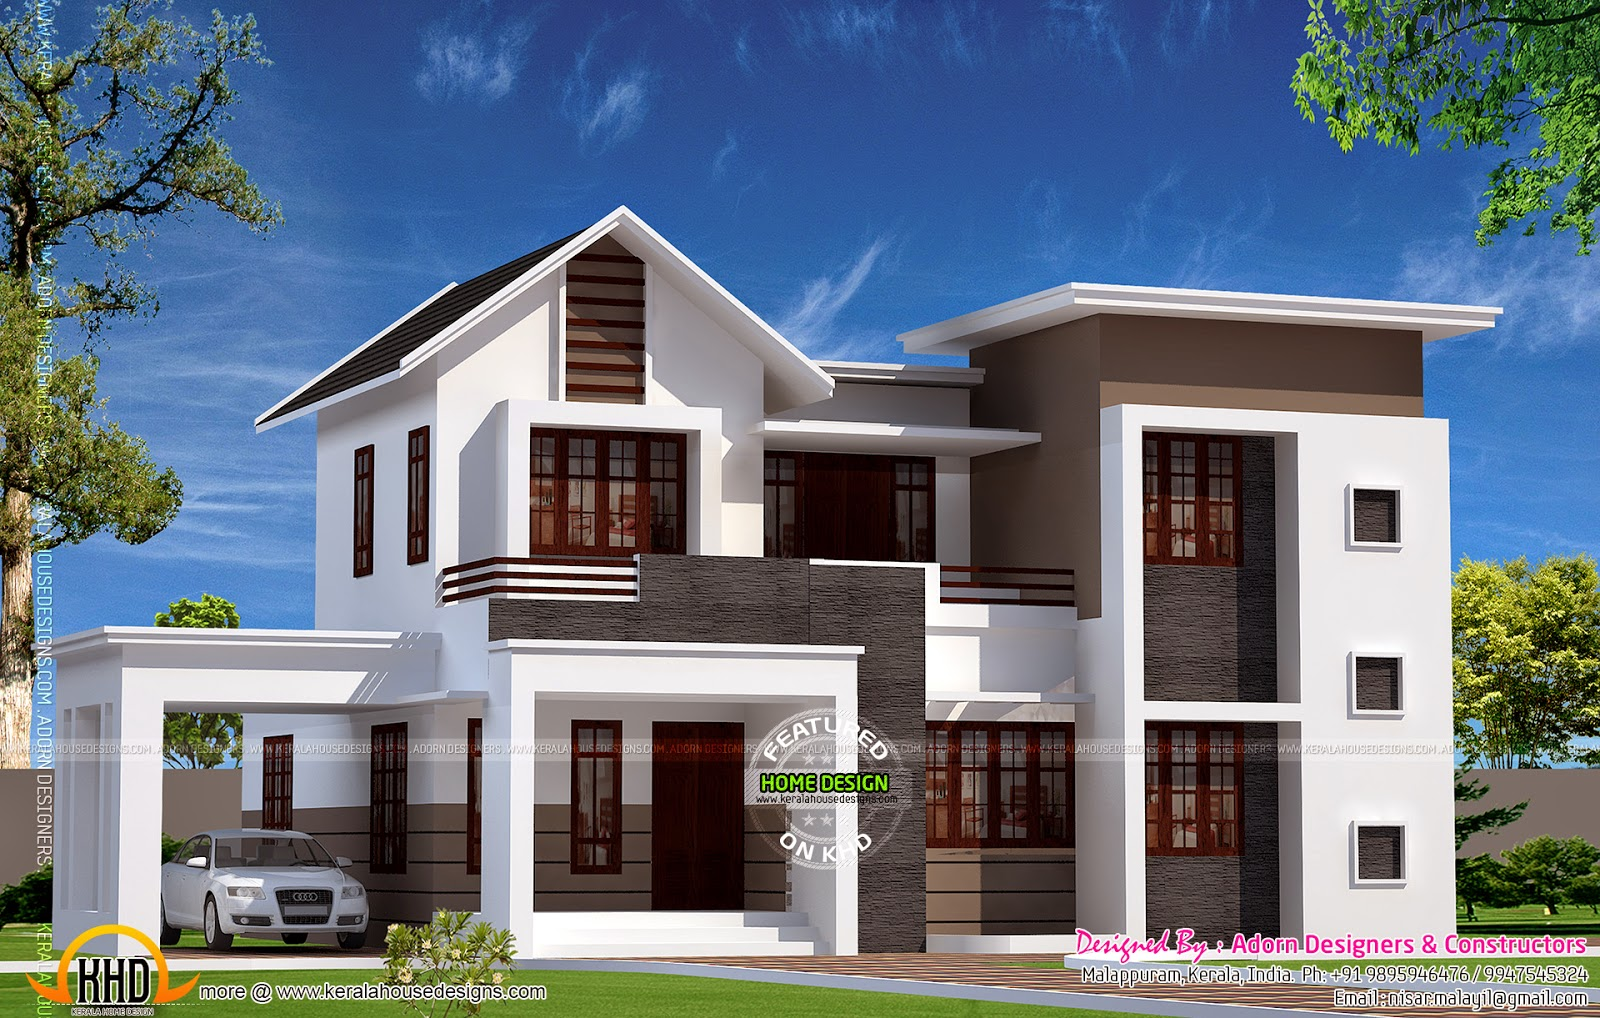 New house design in 1900 sq feet kerala home design and for House design ideas 2016